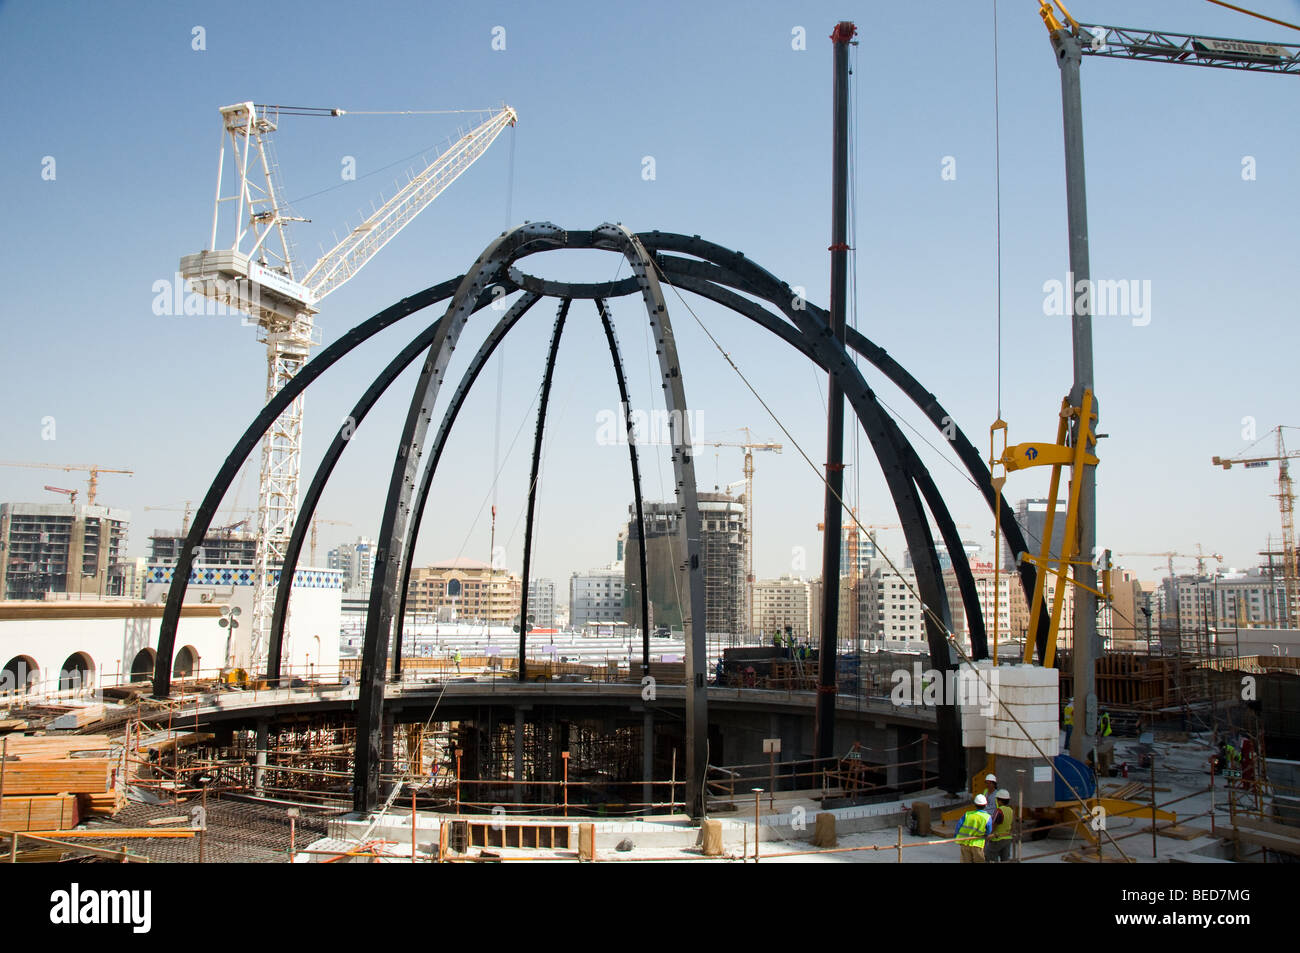 Construction work on a building site in Dubai - Stock Image